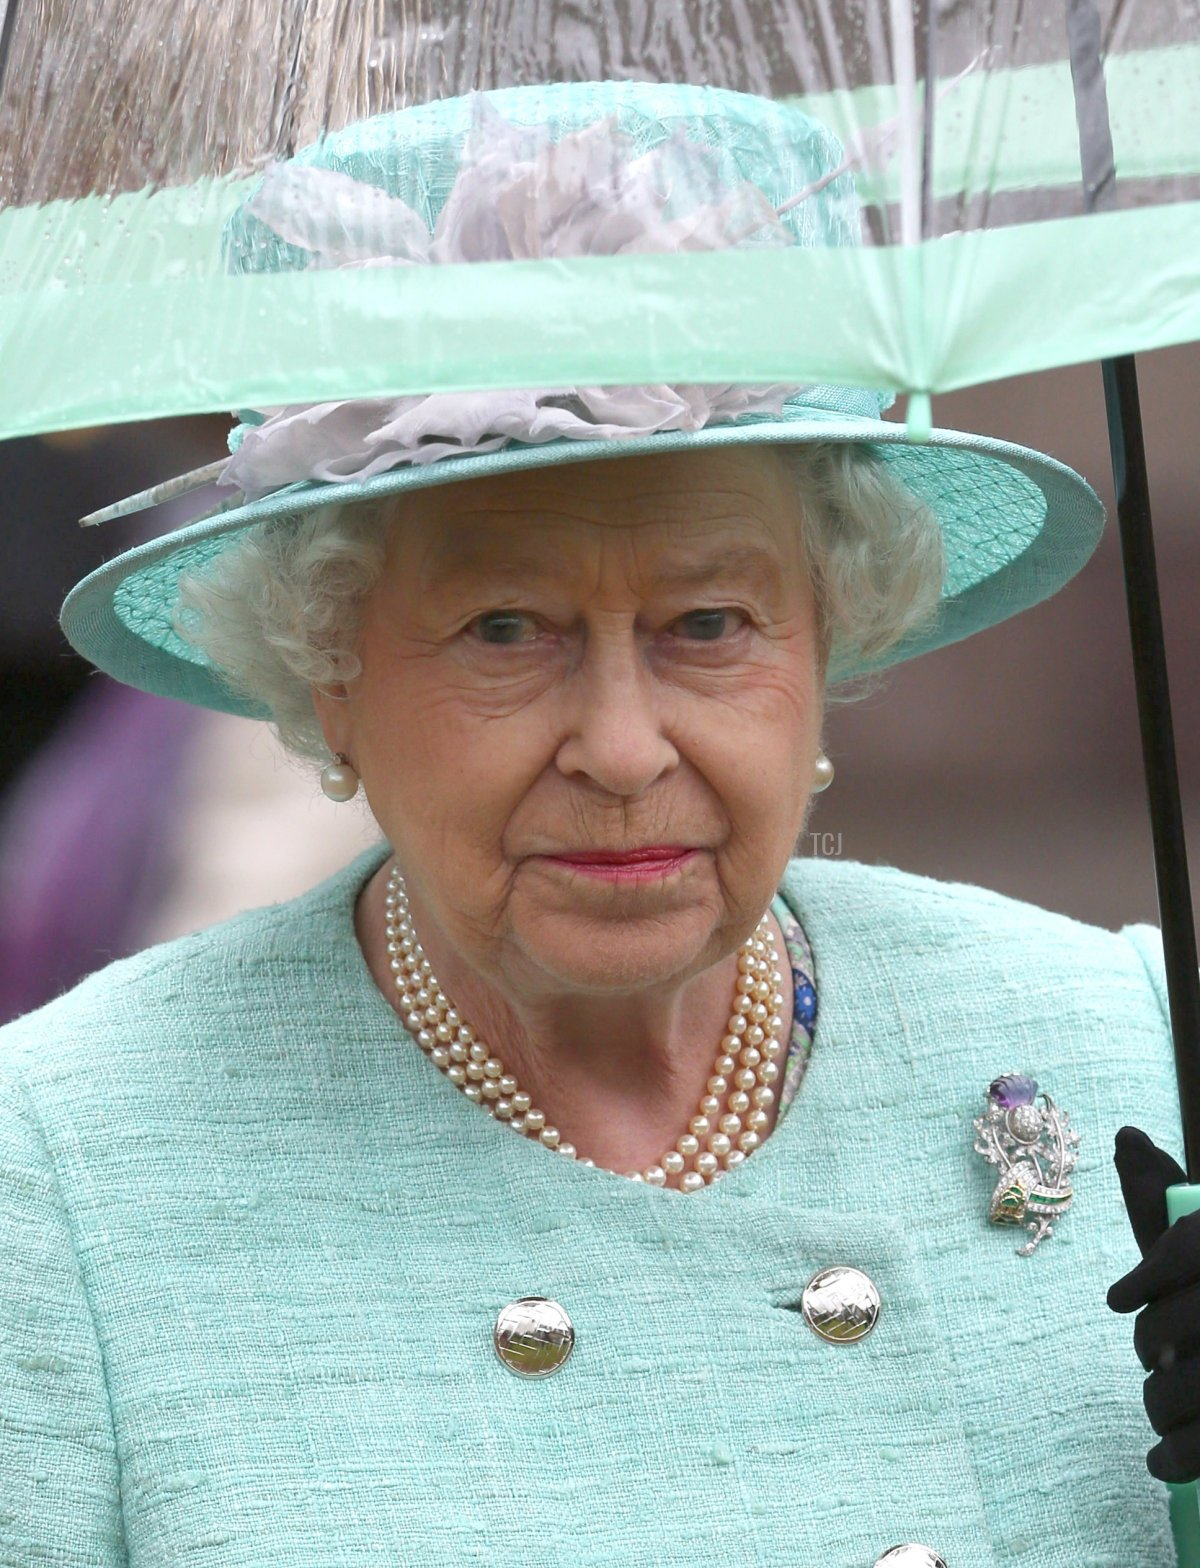 Queen Elizabeth II hosts a garden party at the Palace of Holyrood house on July 2, 2013 in Edinburgh, Scotland